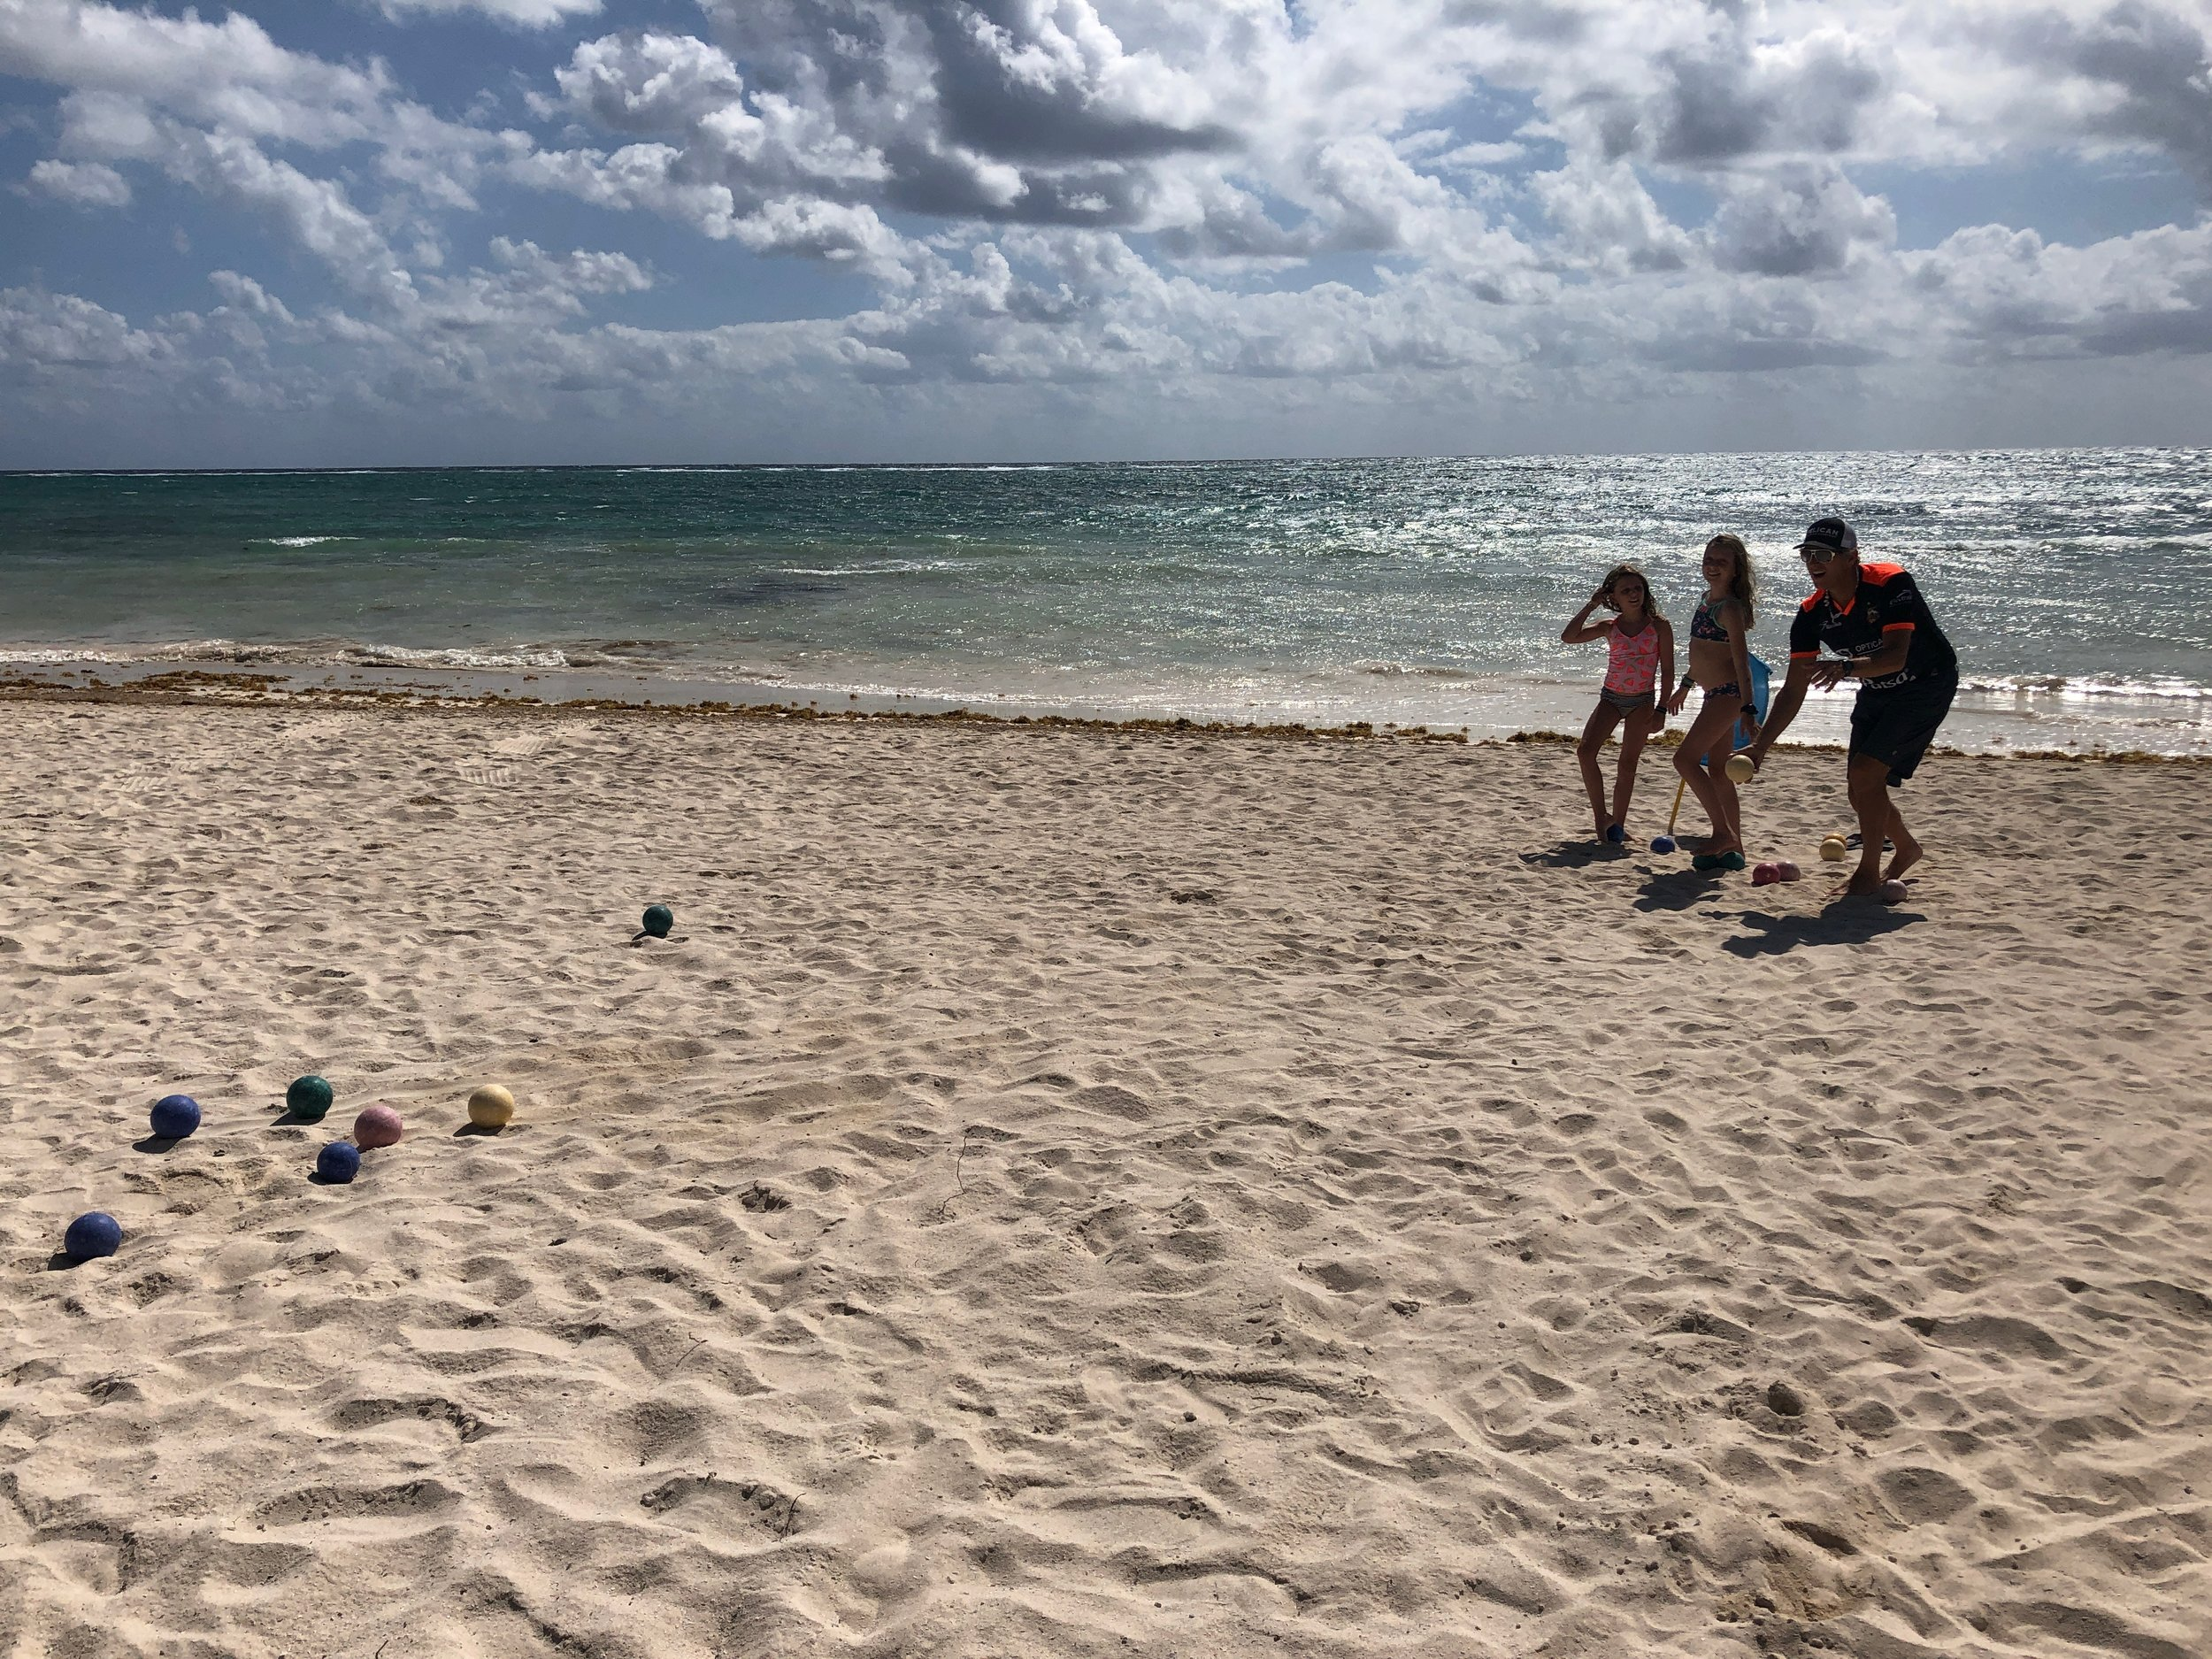 A family game of bocce on the beach